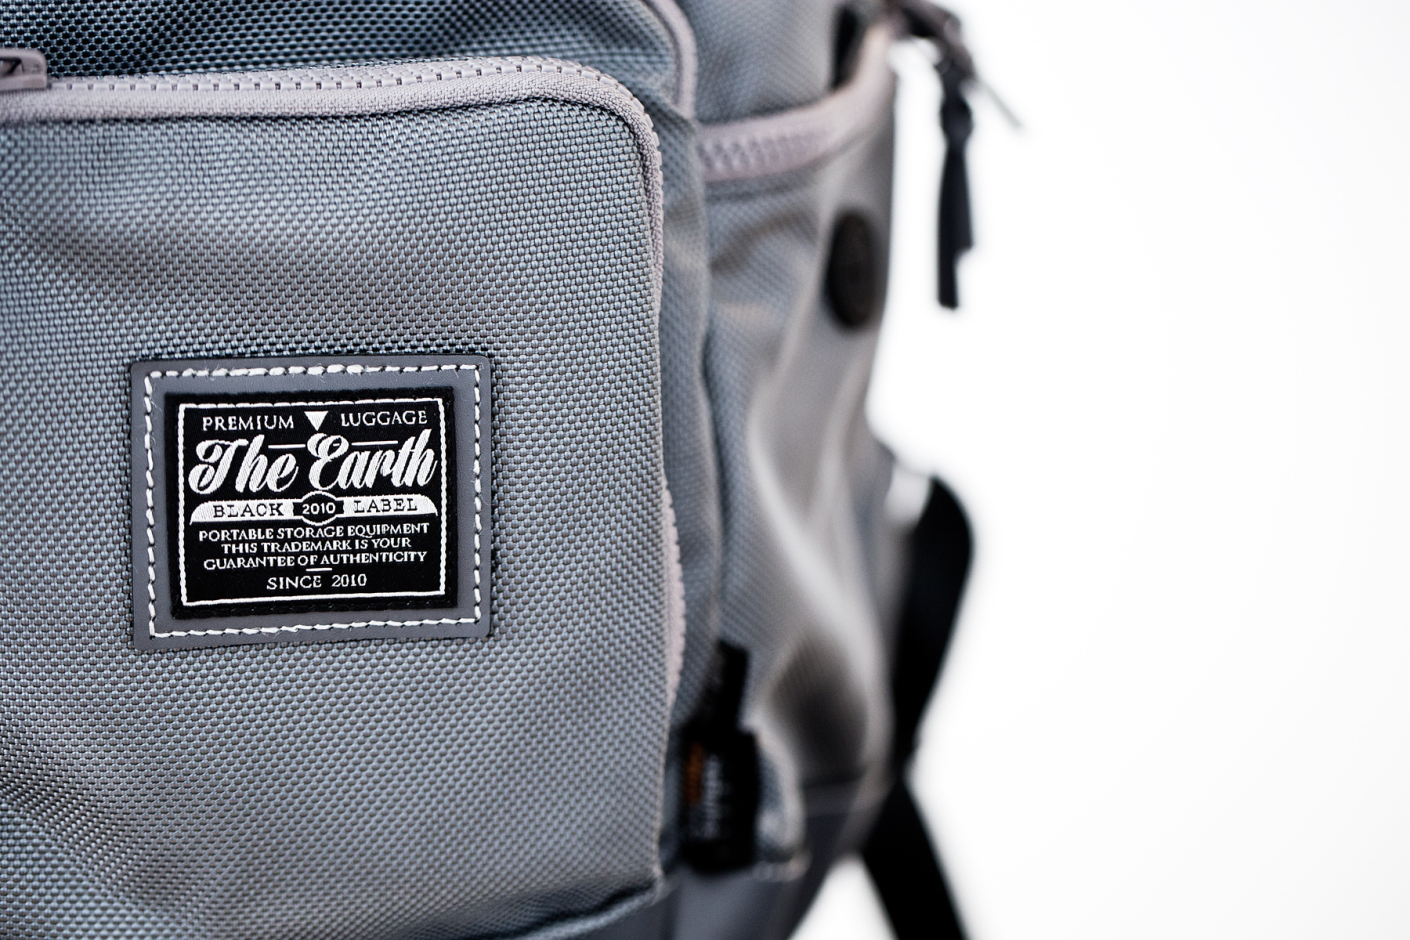 the earth 2014 spring summer backpacks 3 The Earth Summer 2014 Backpack Collection